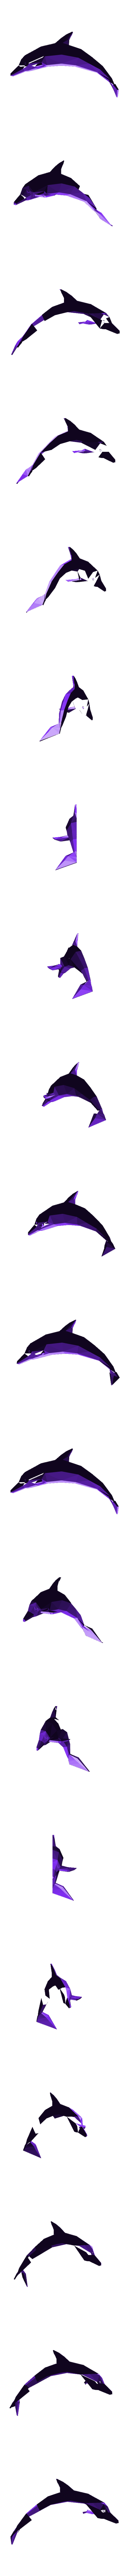 Dolphin.stl Download free STL file Marine Life Wall Project • 3D printer template, Double_Alfa_3D